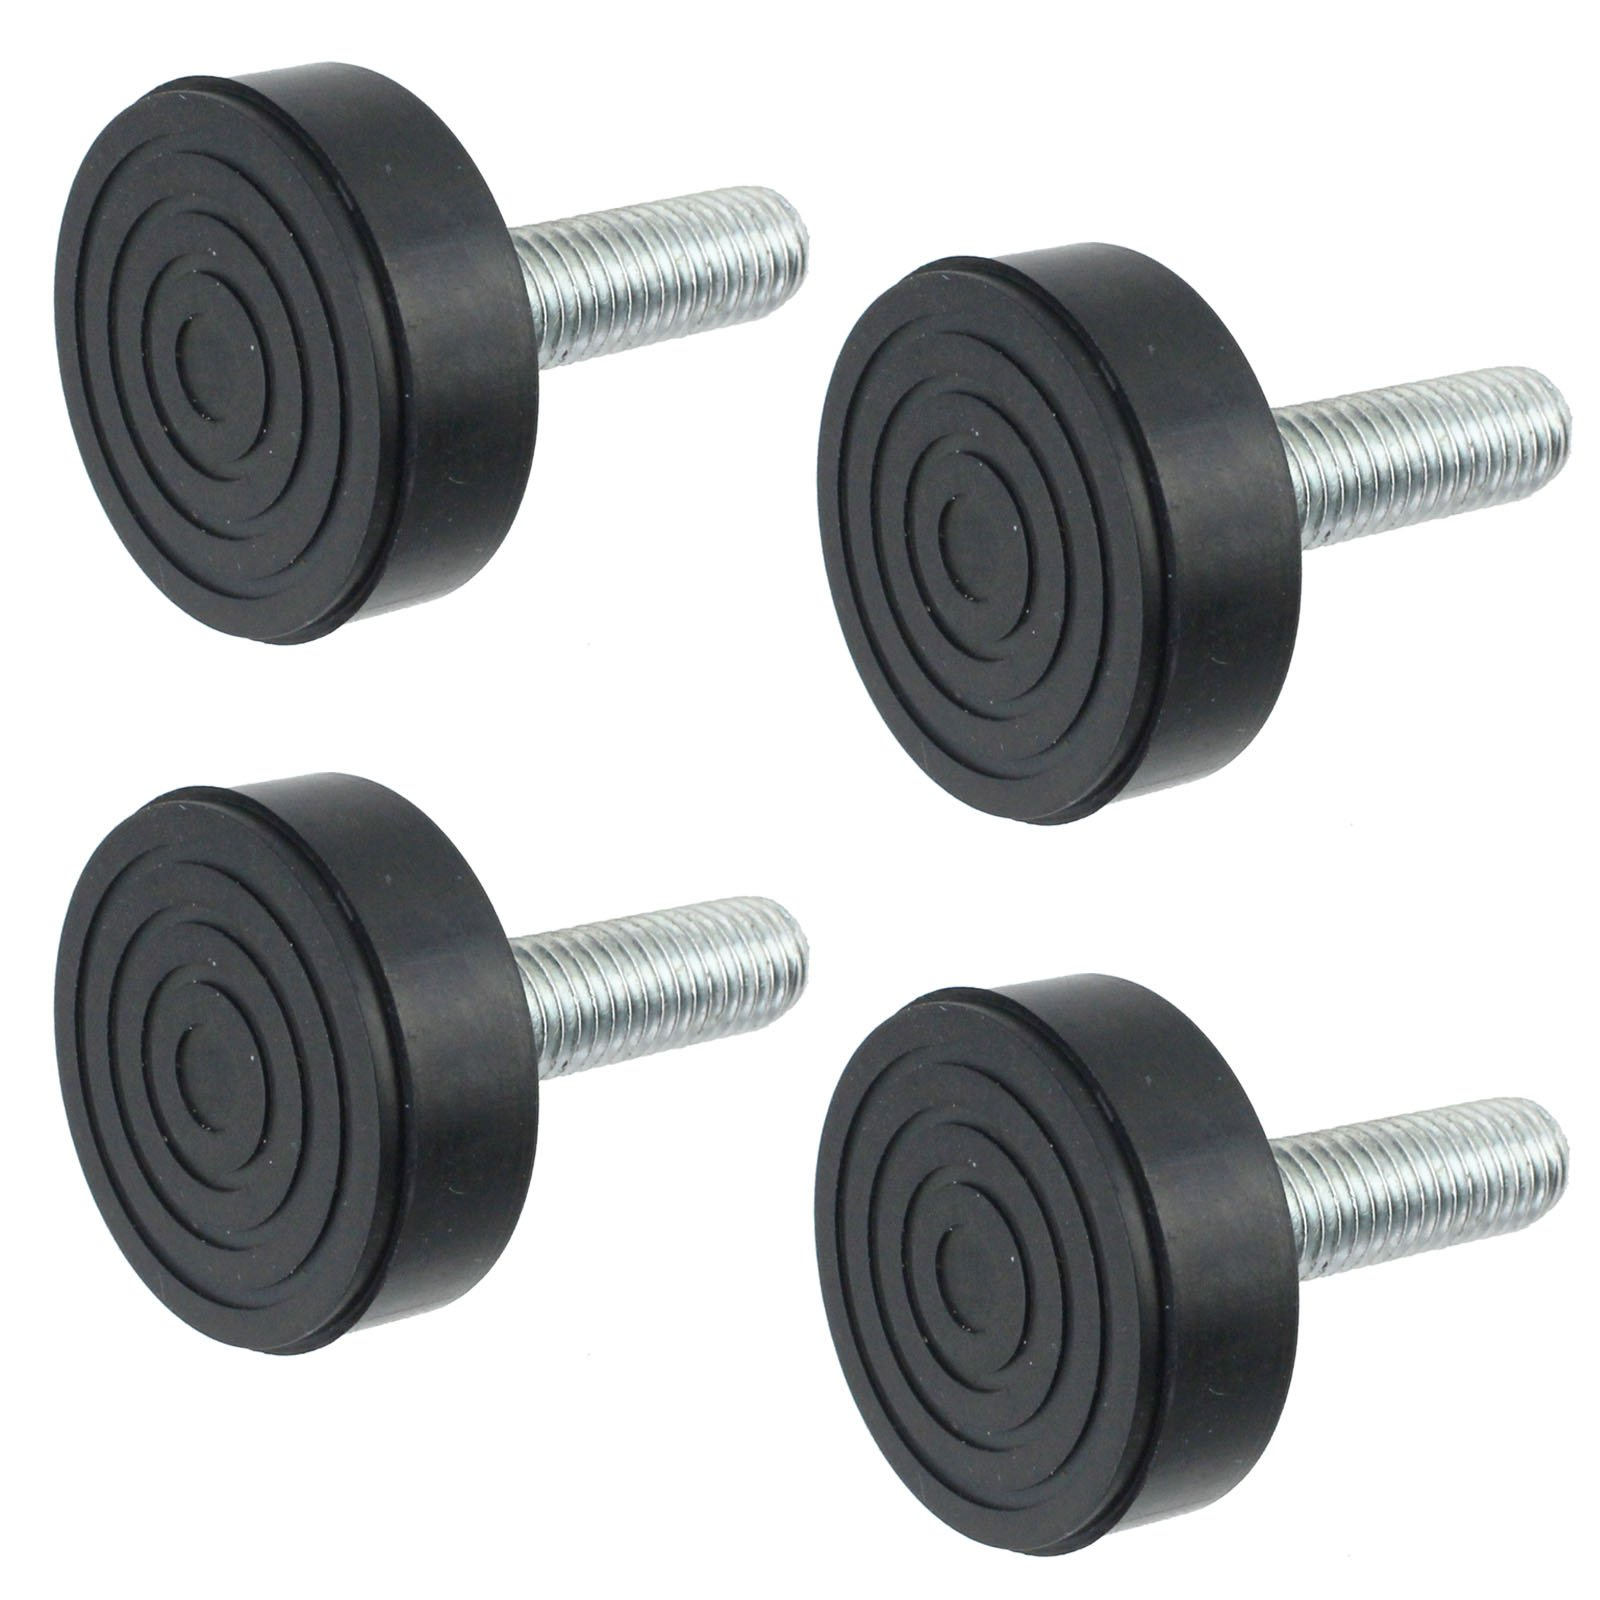 Spares2go Universal Oven Cooker Adjustable Screw In Foot (Pack Of 4, 10mm Thread)